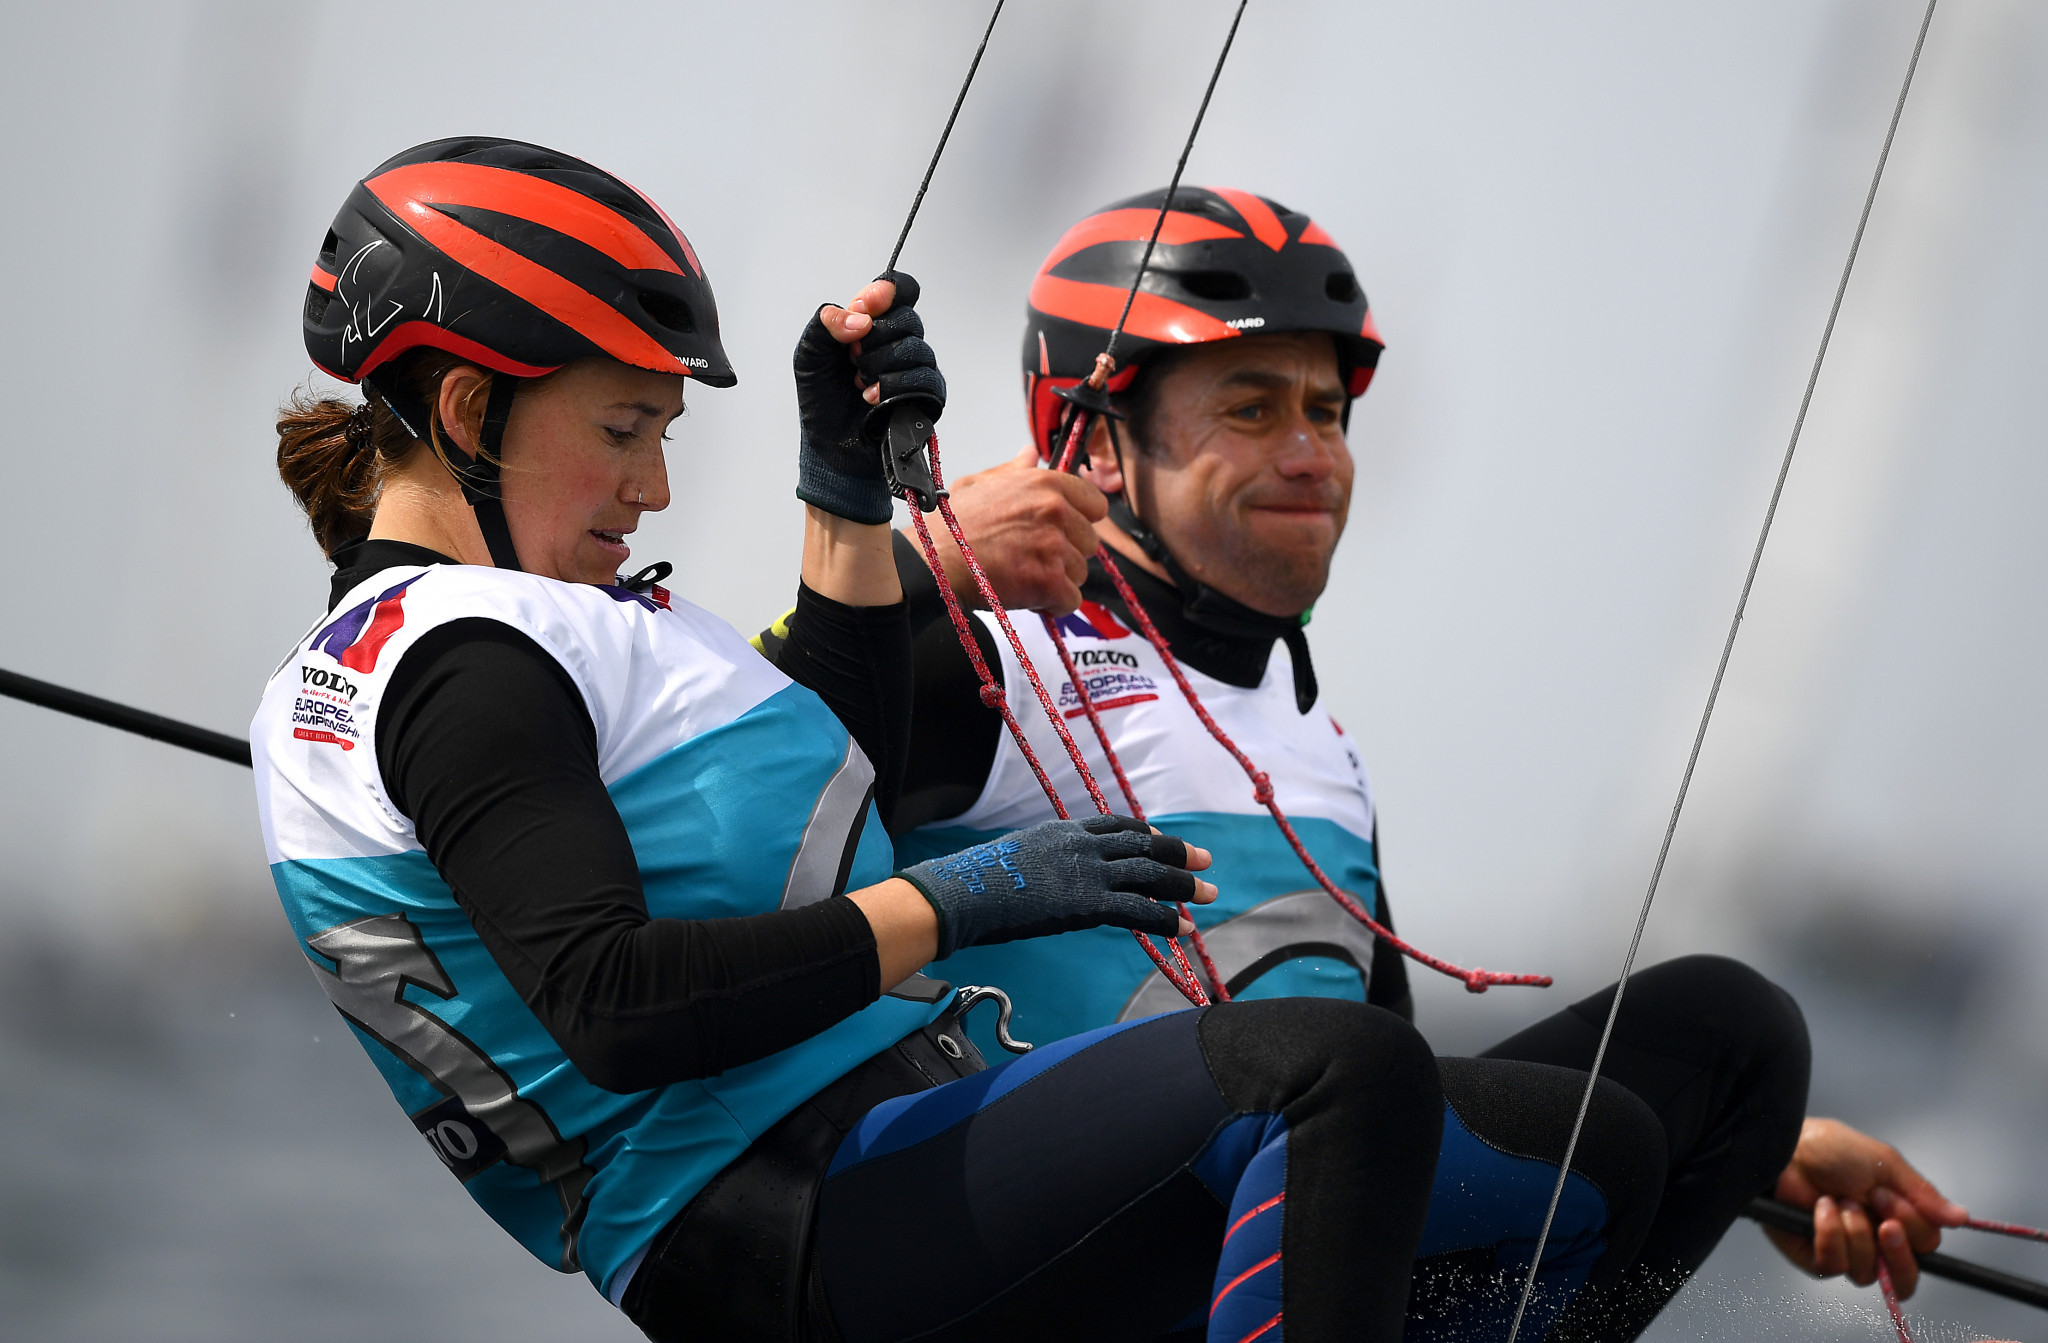 John Gimson and Anna Burnet of Britain lead the Nacra 17 class ©Getty Images